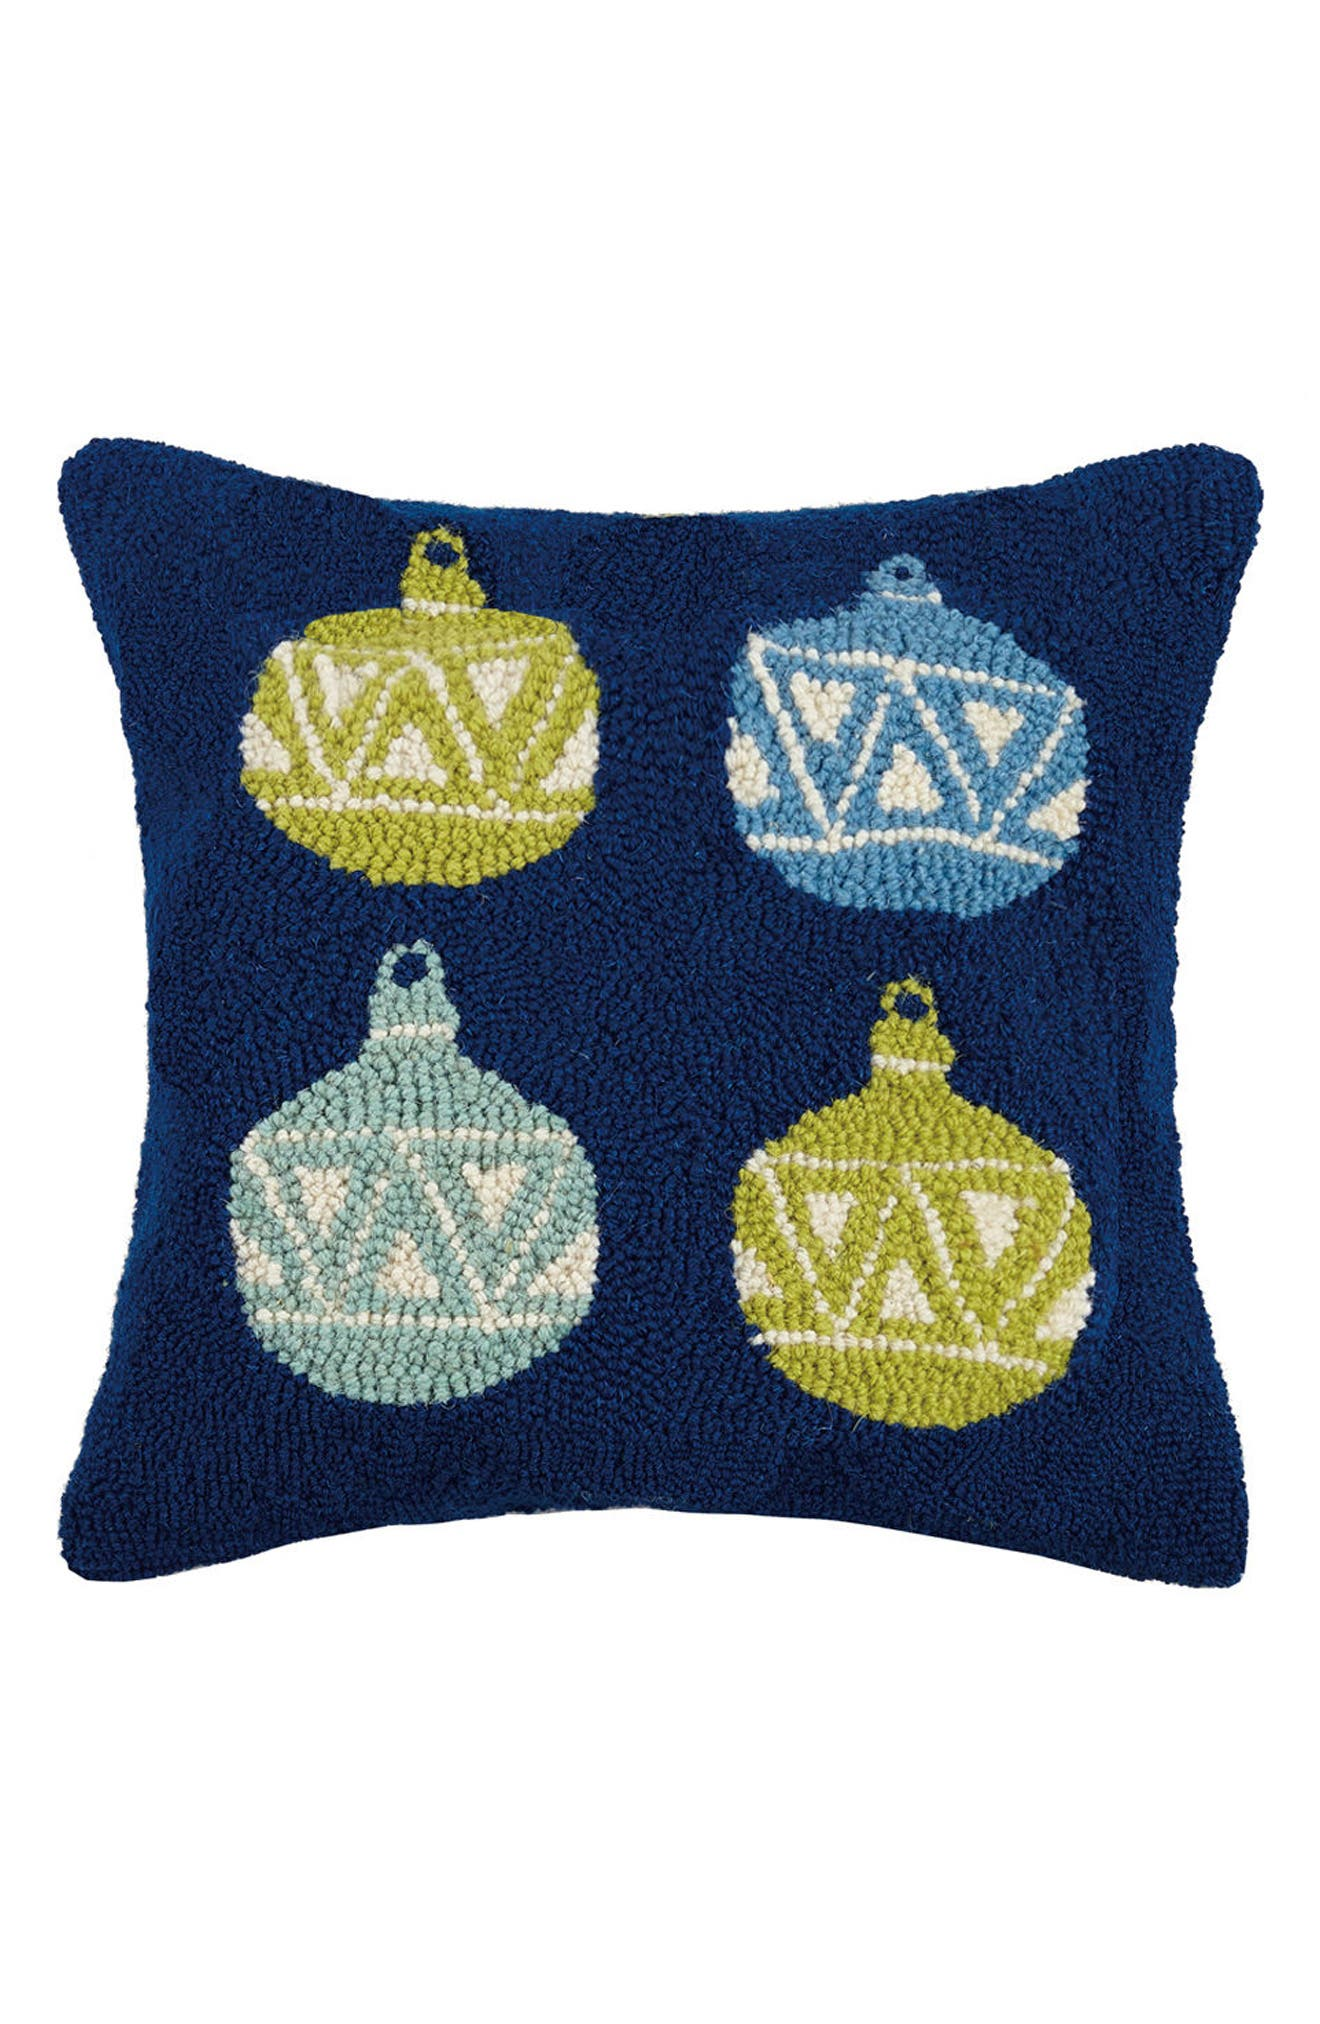 Ornaments Hooked Accent Pillow,                             Main thumbnail 1, color,                             400